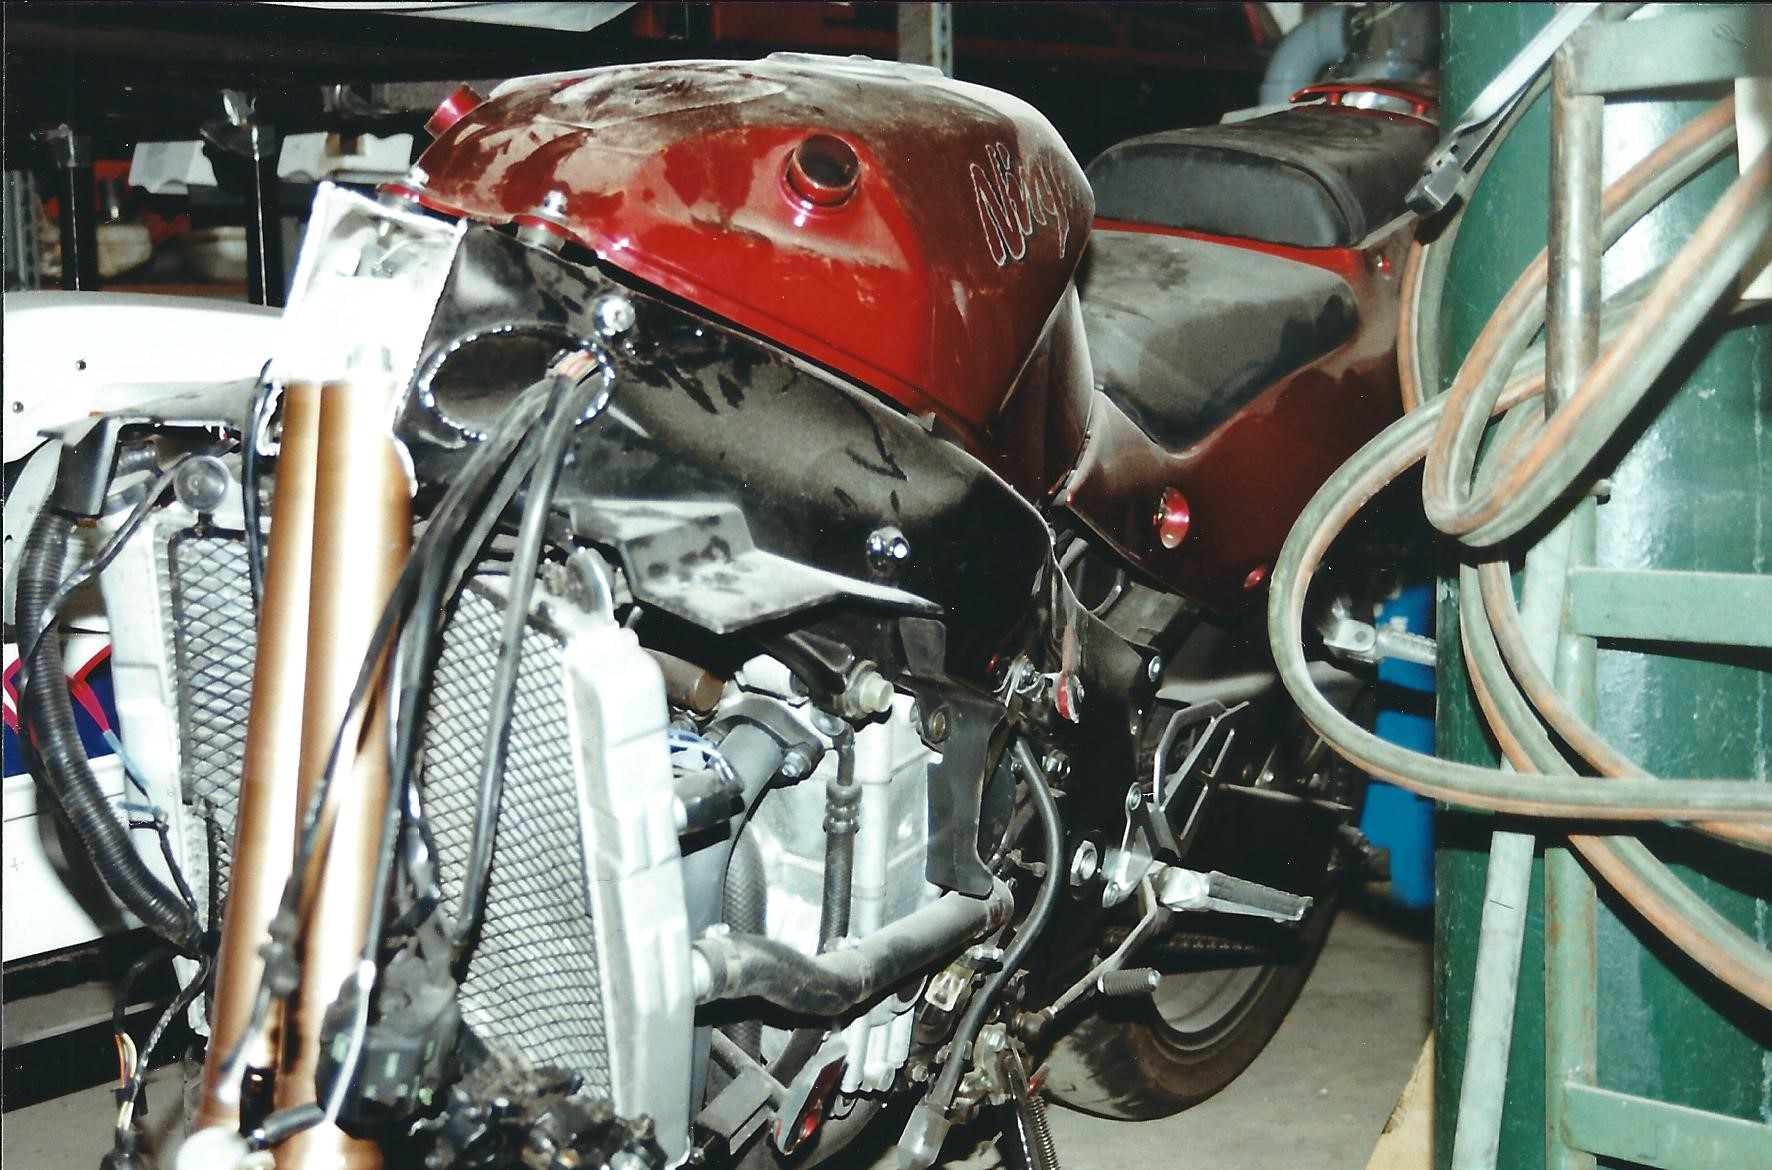 Personal Injury: A Motorcycle Crash is always a serious accident